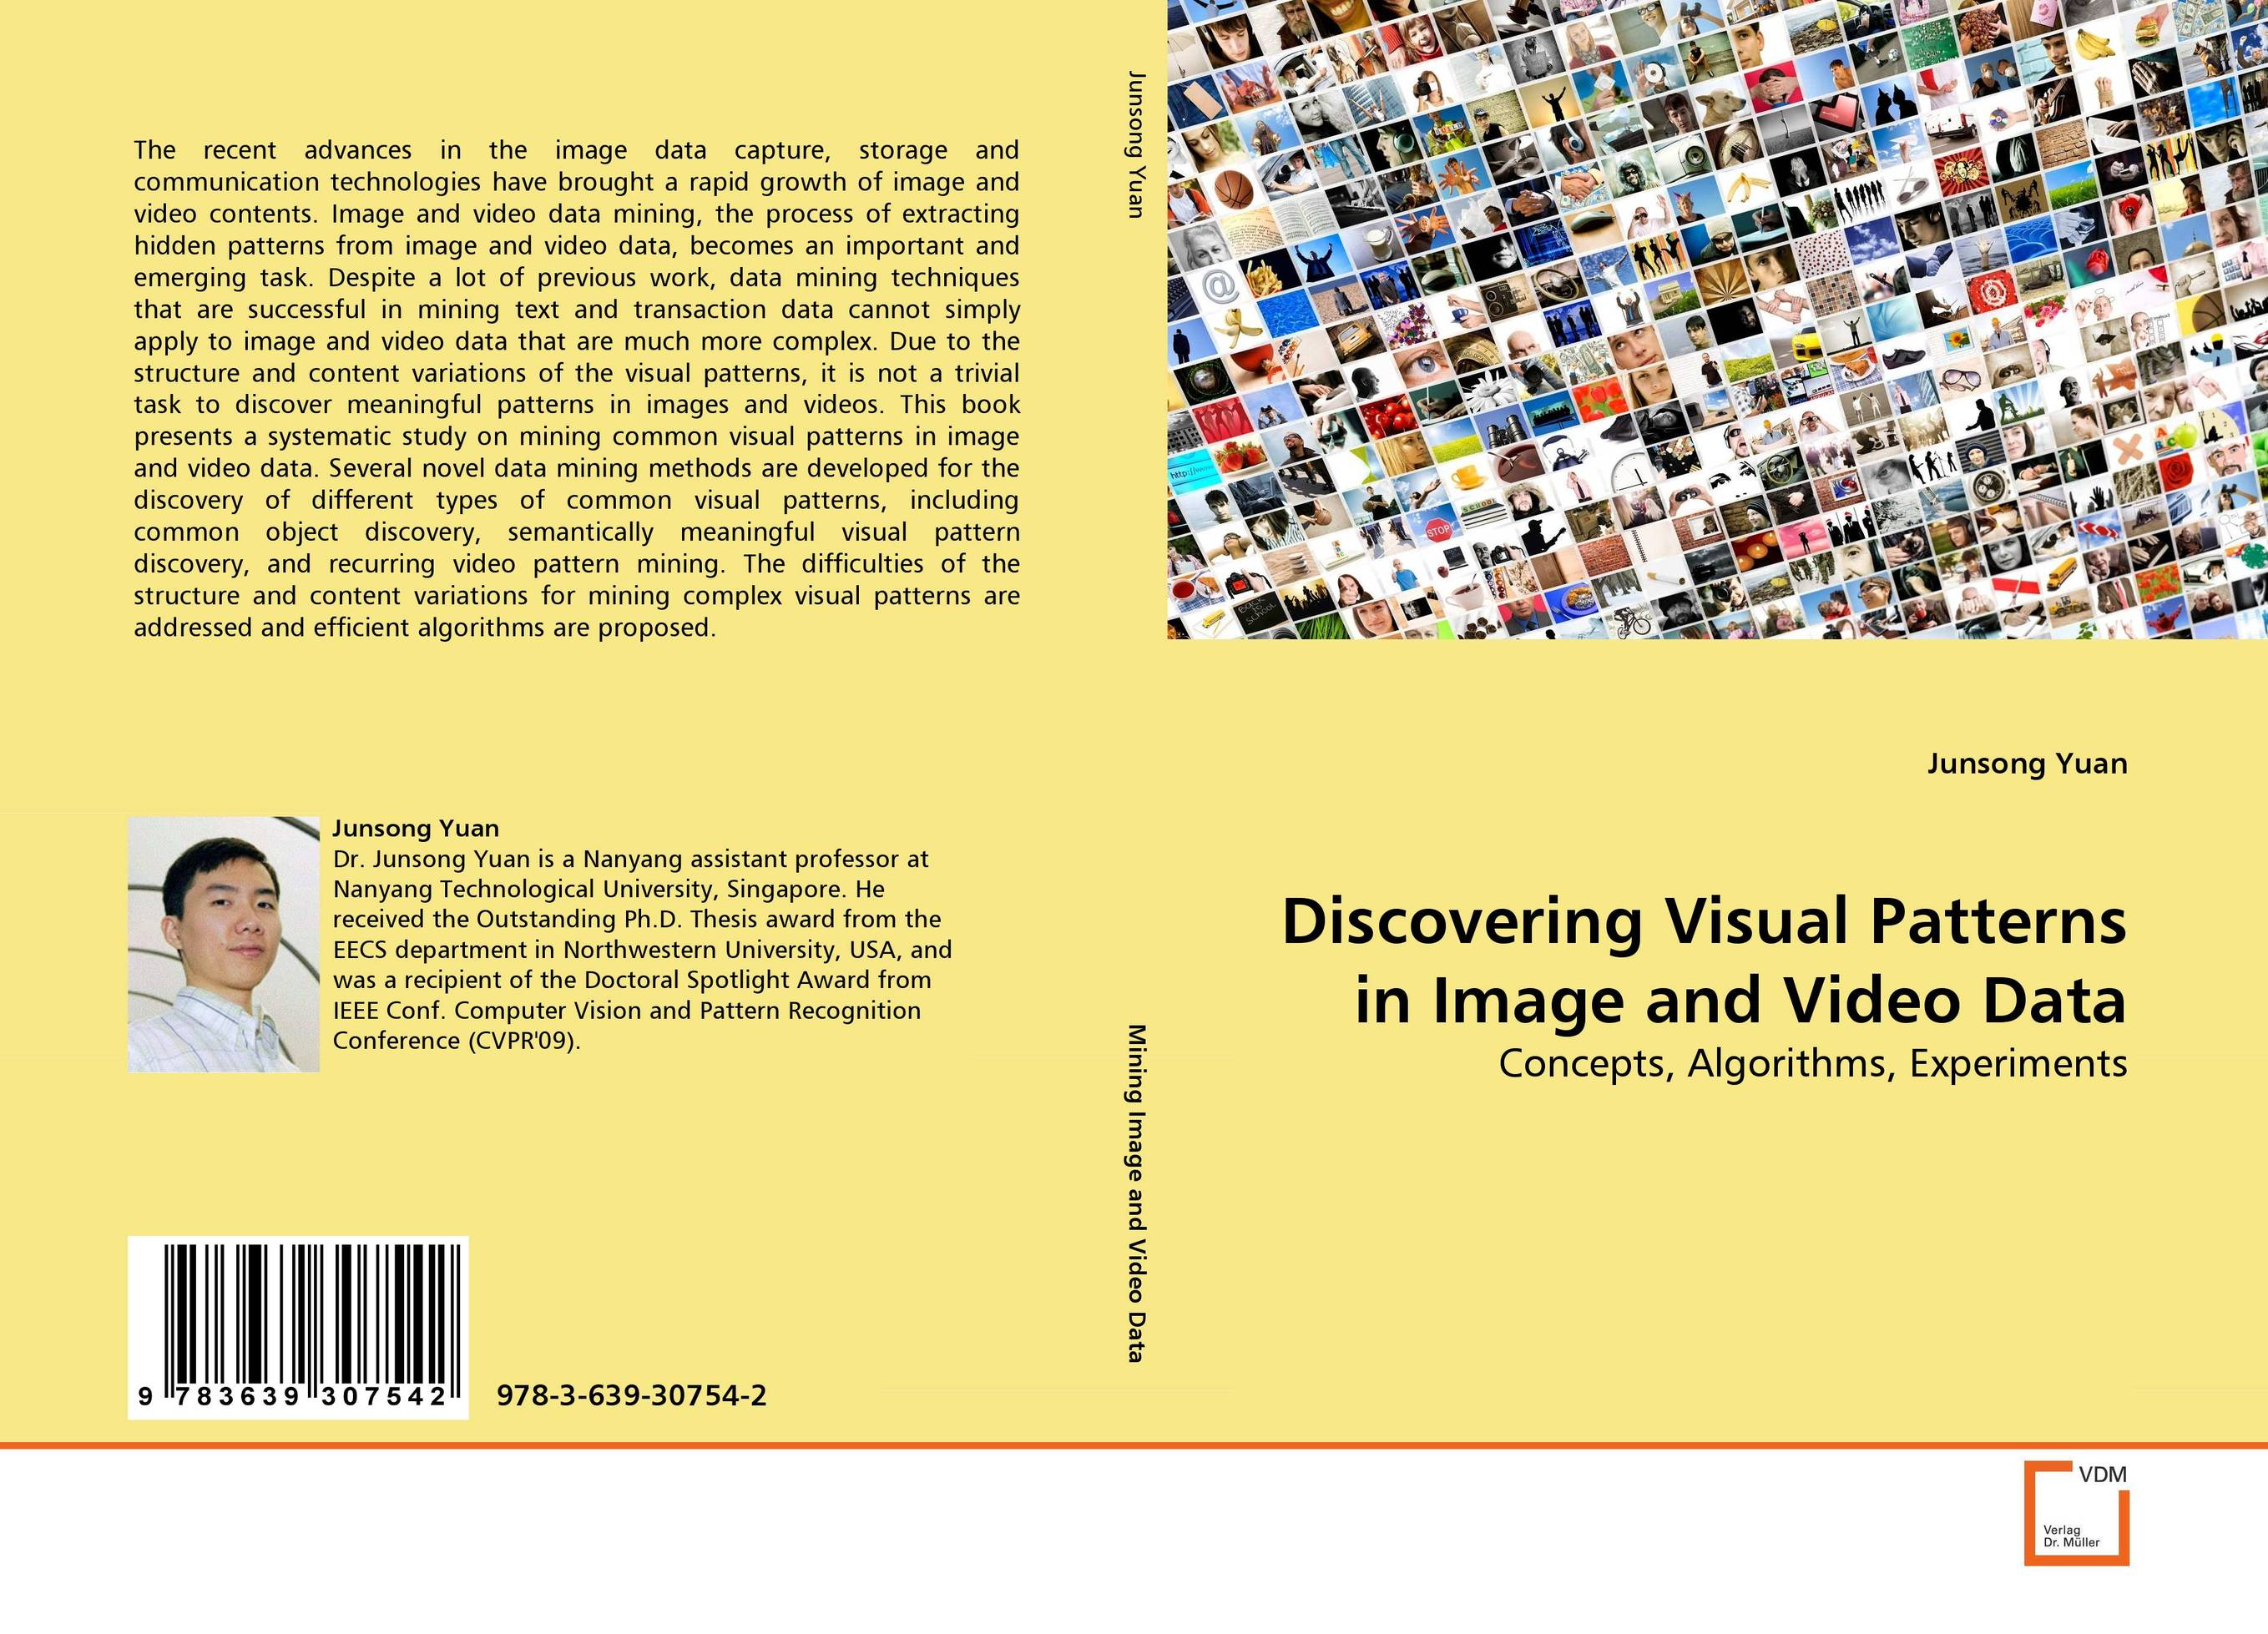 Discovering Visual Patterns in Image and Video Data capture of haccp data in the abattoir